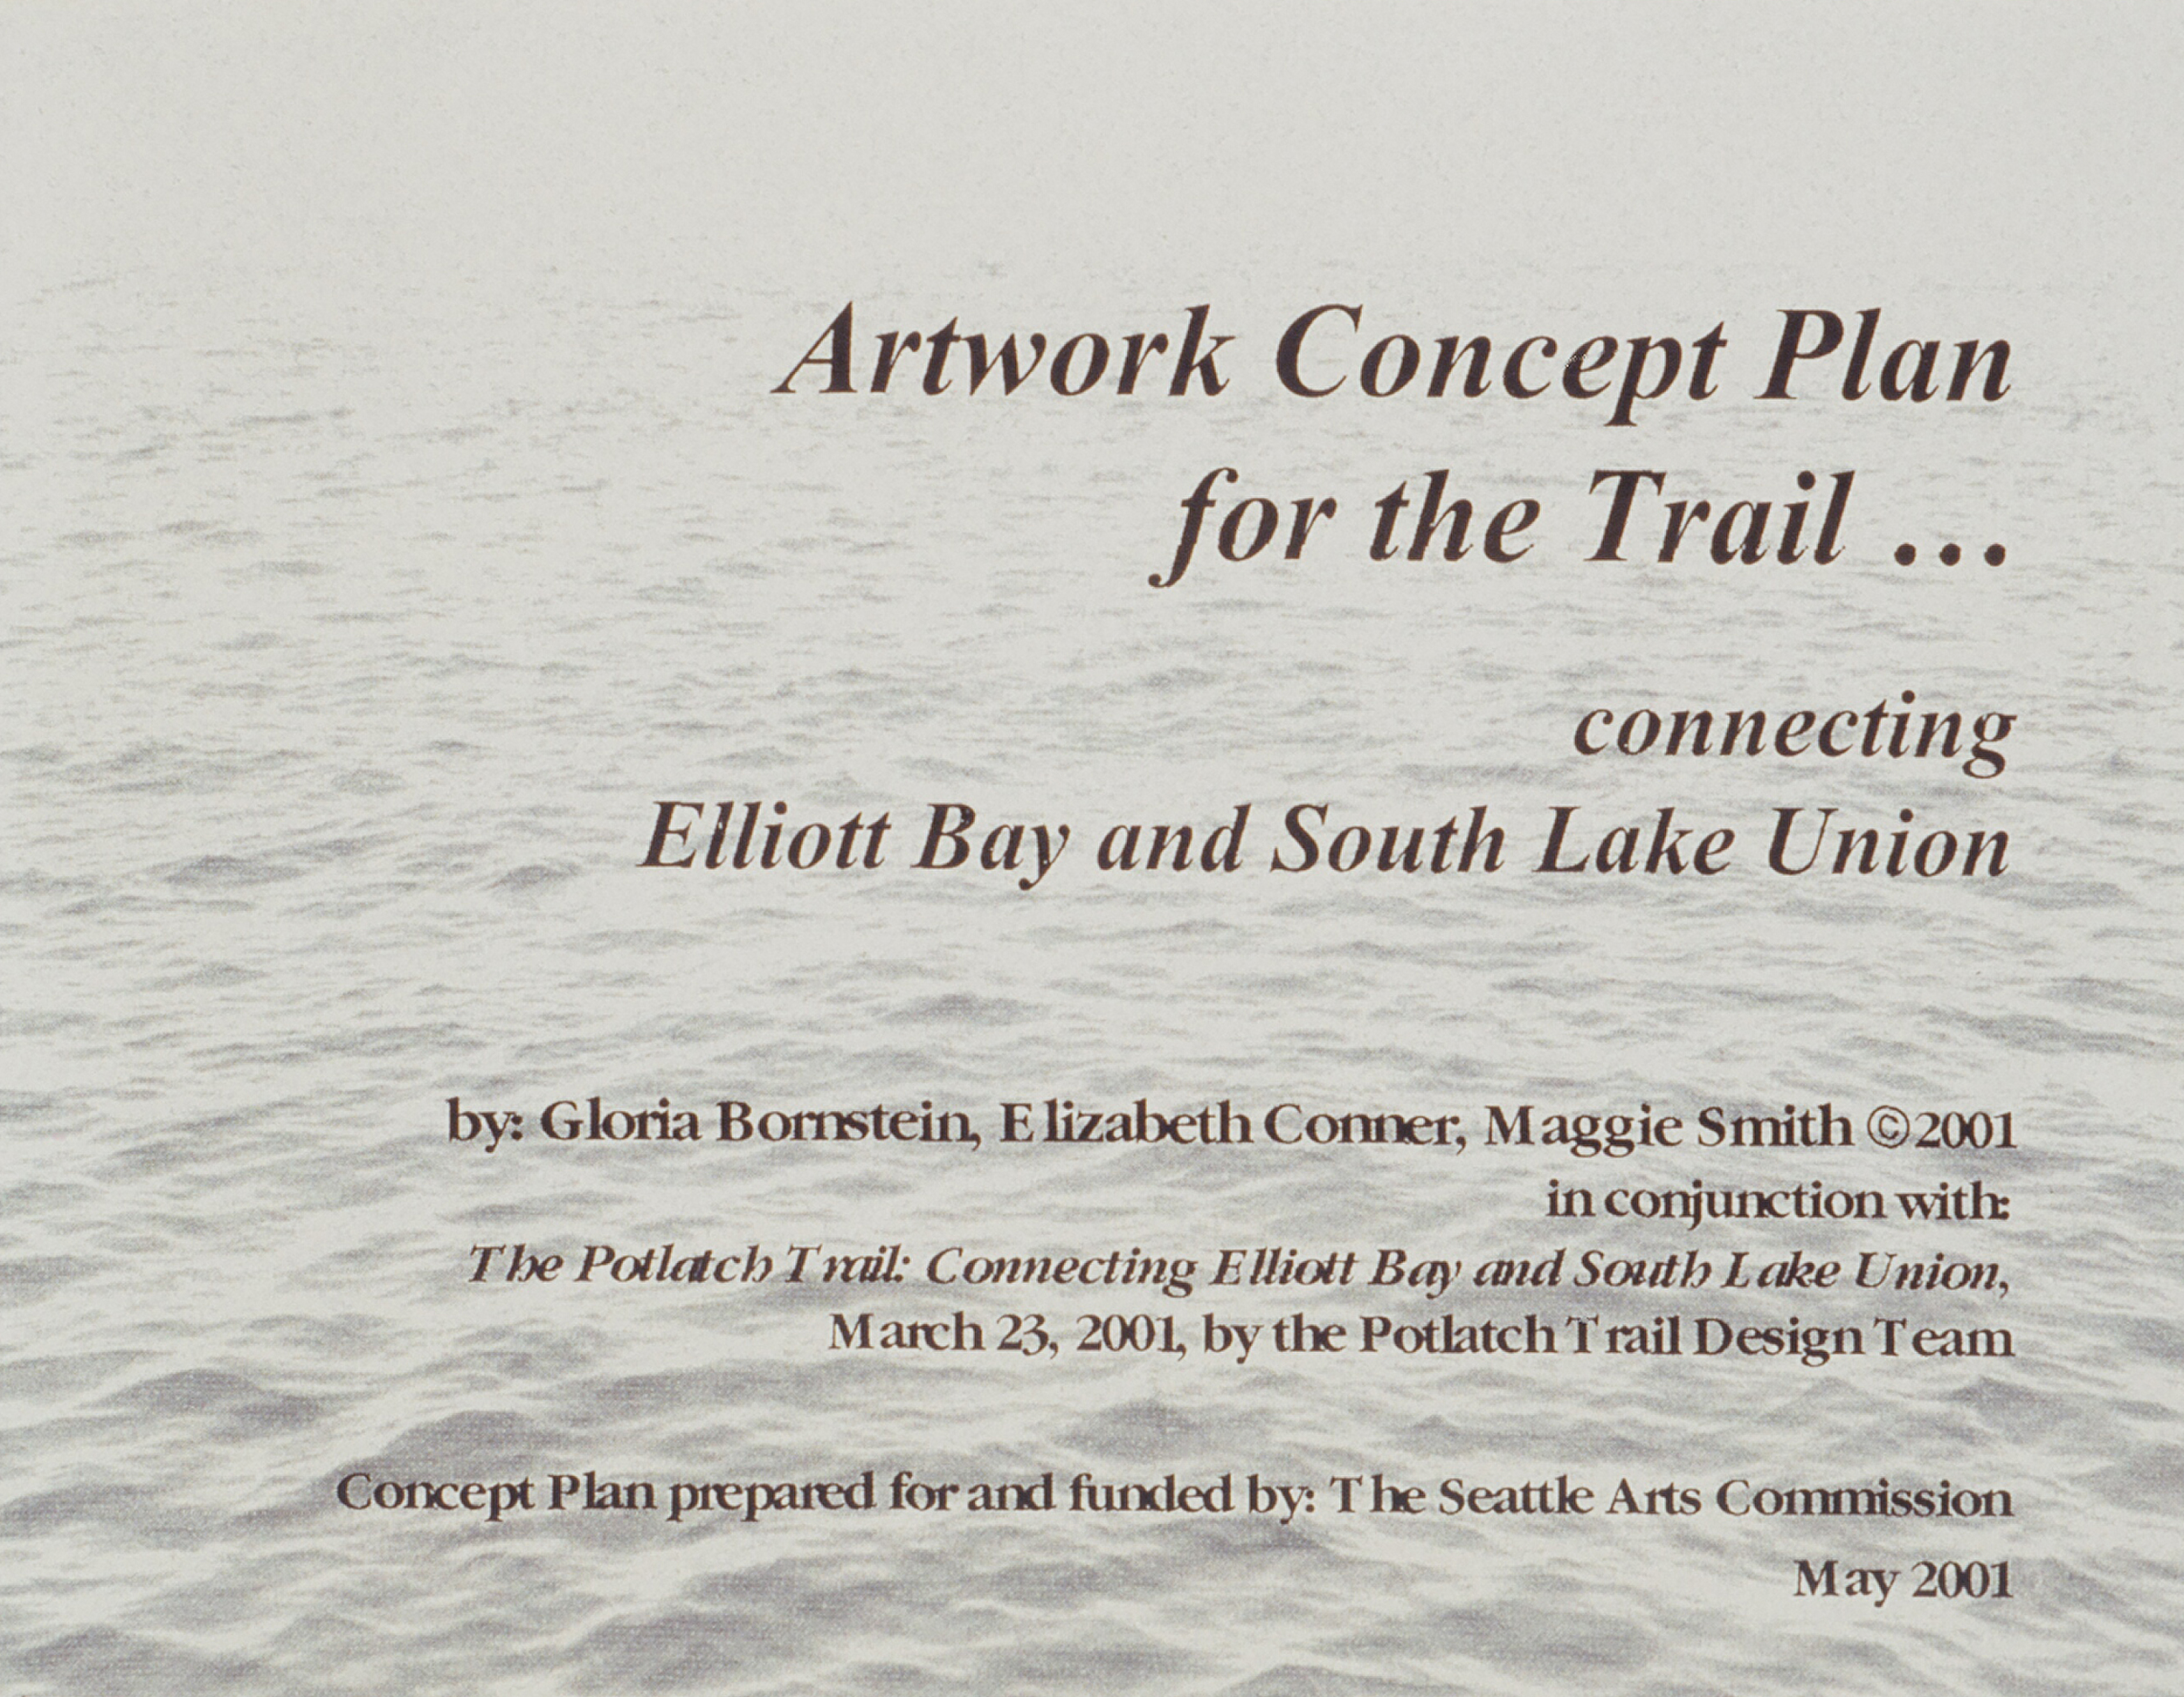 Artwork Concept Plan for Trail, Connecting Elliott Bay and South Lake Union